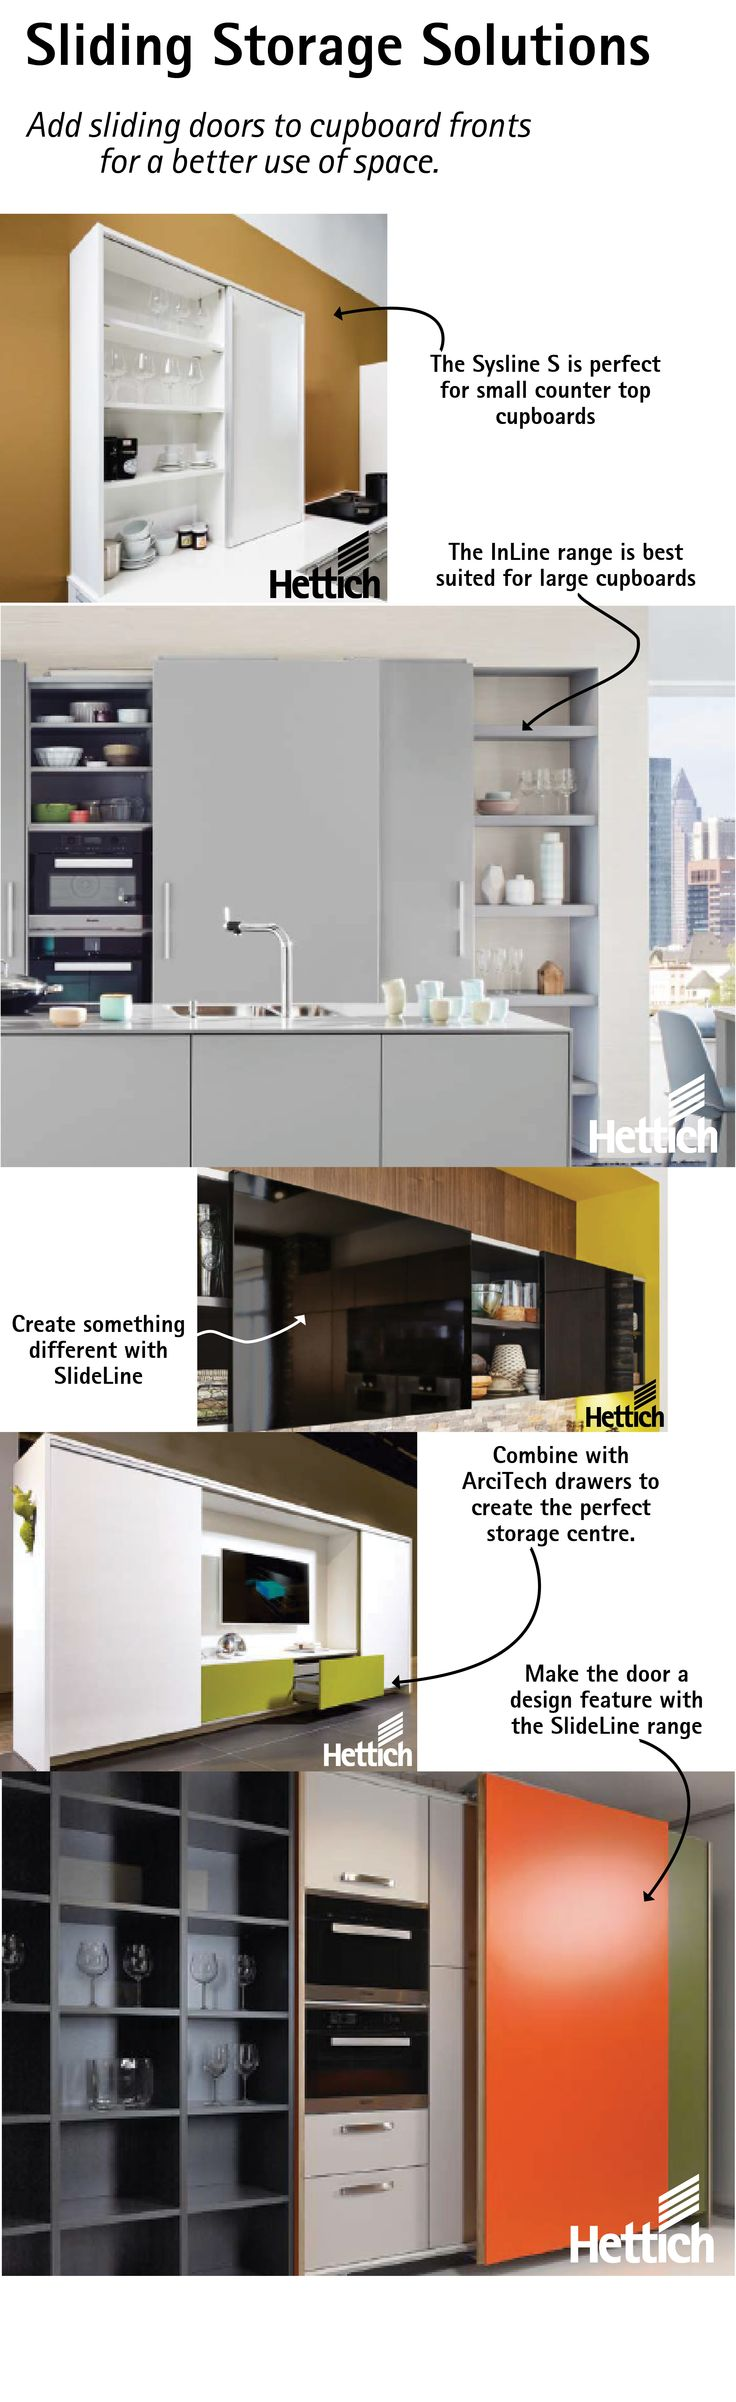 Add sliding doors instead of opening doors to cupboards for a better use of space. Click on the pin for more inspiration. #slidingdoordesign #storagesolutions